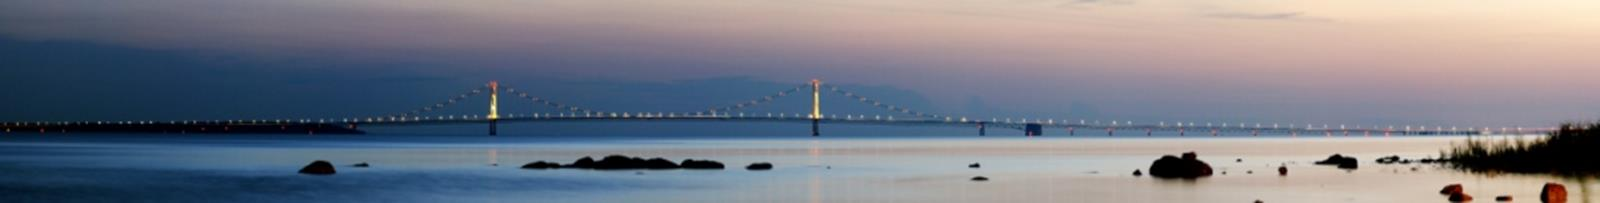 Mackinac Bridge. Credit Dehk en.wikipedia